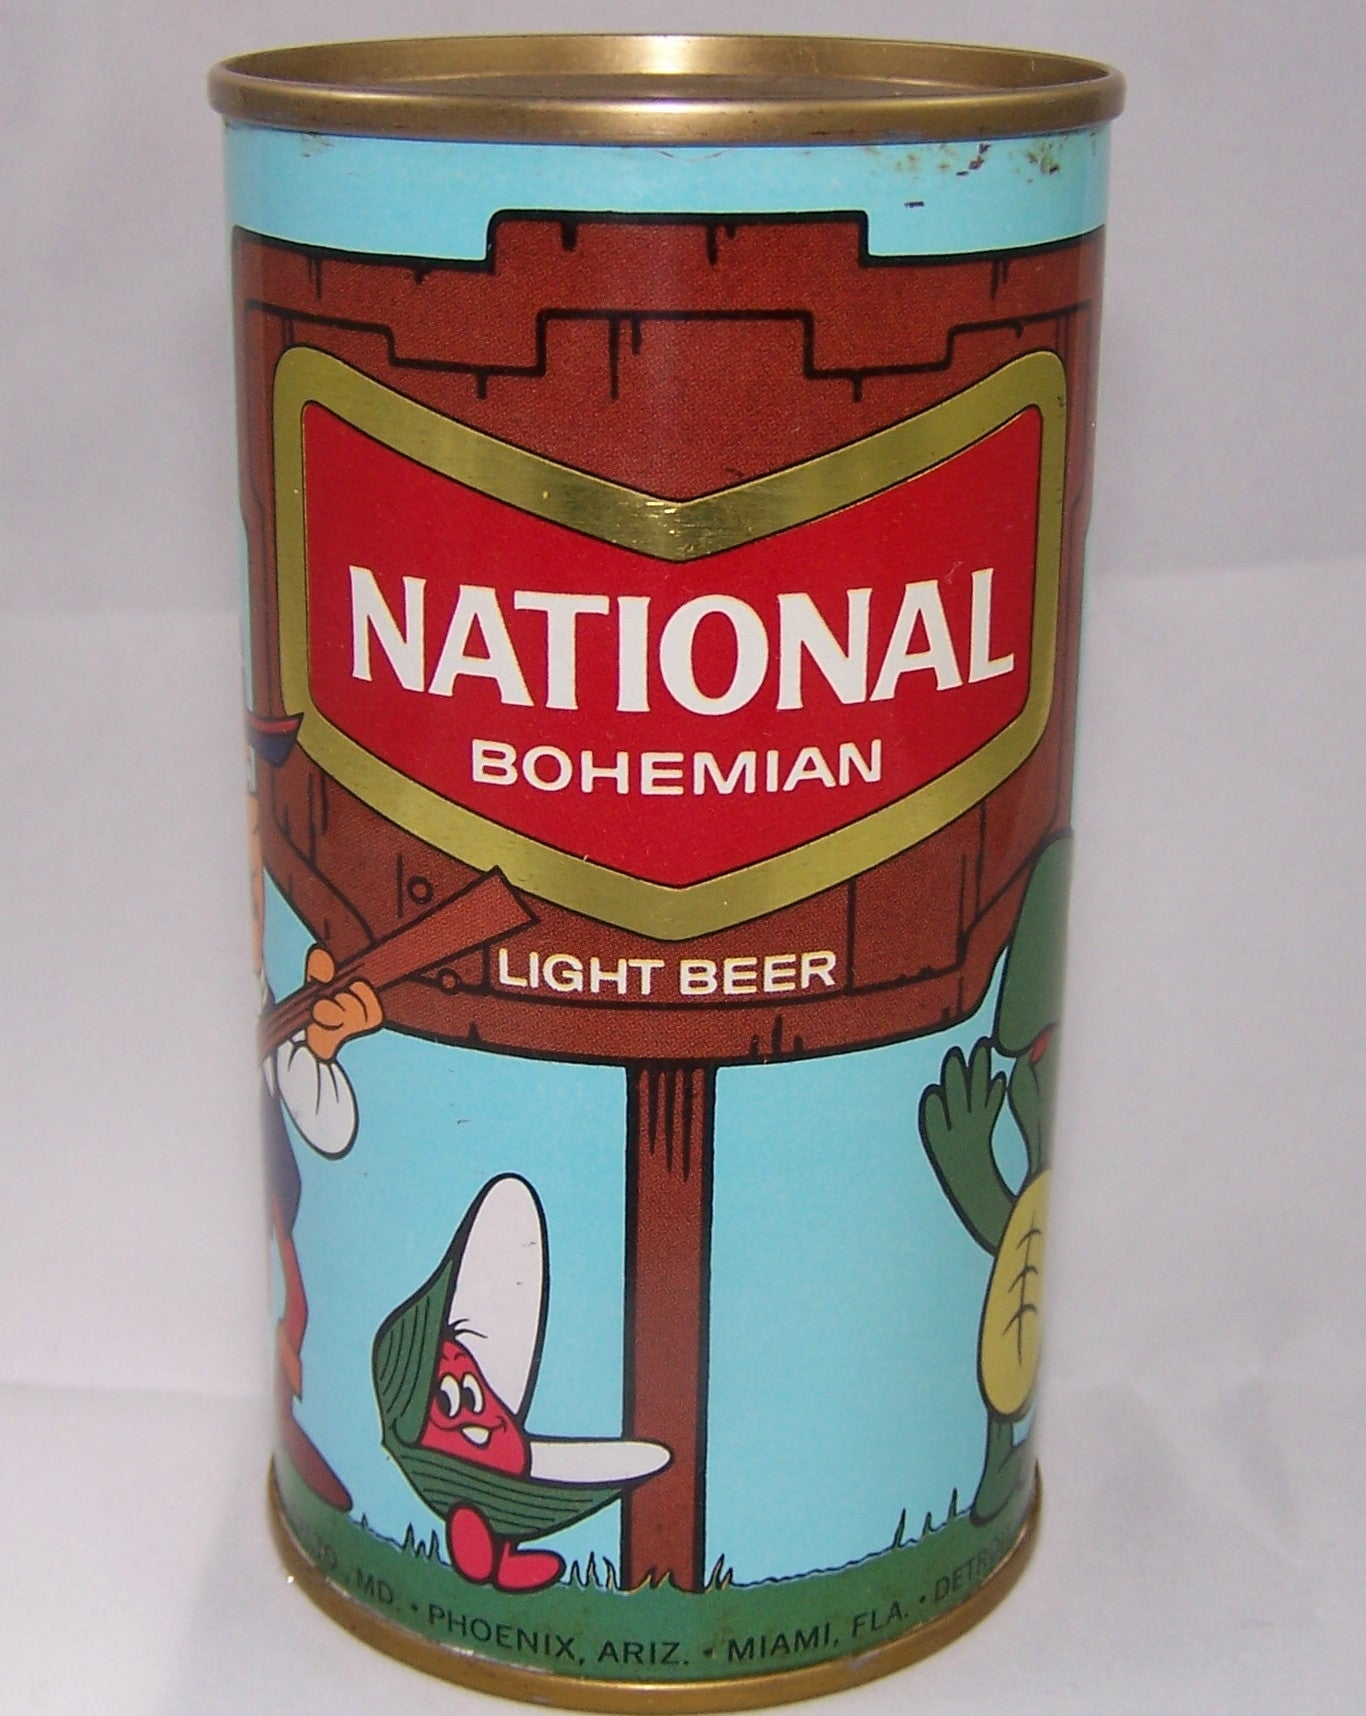 National Bohemian Cartoon Can, USBC II 97-5, Grade 1/1+ Sold!!